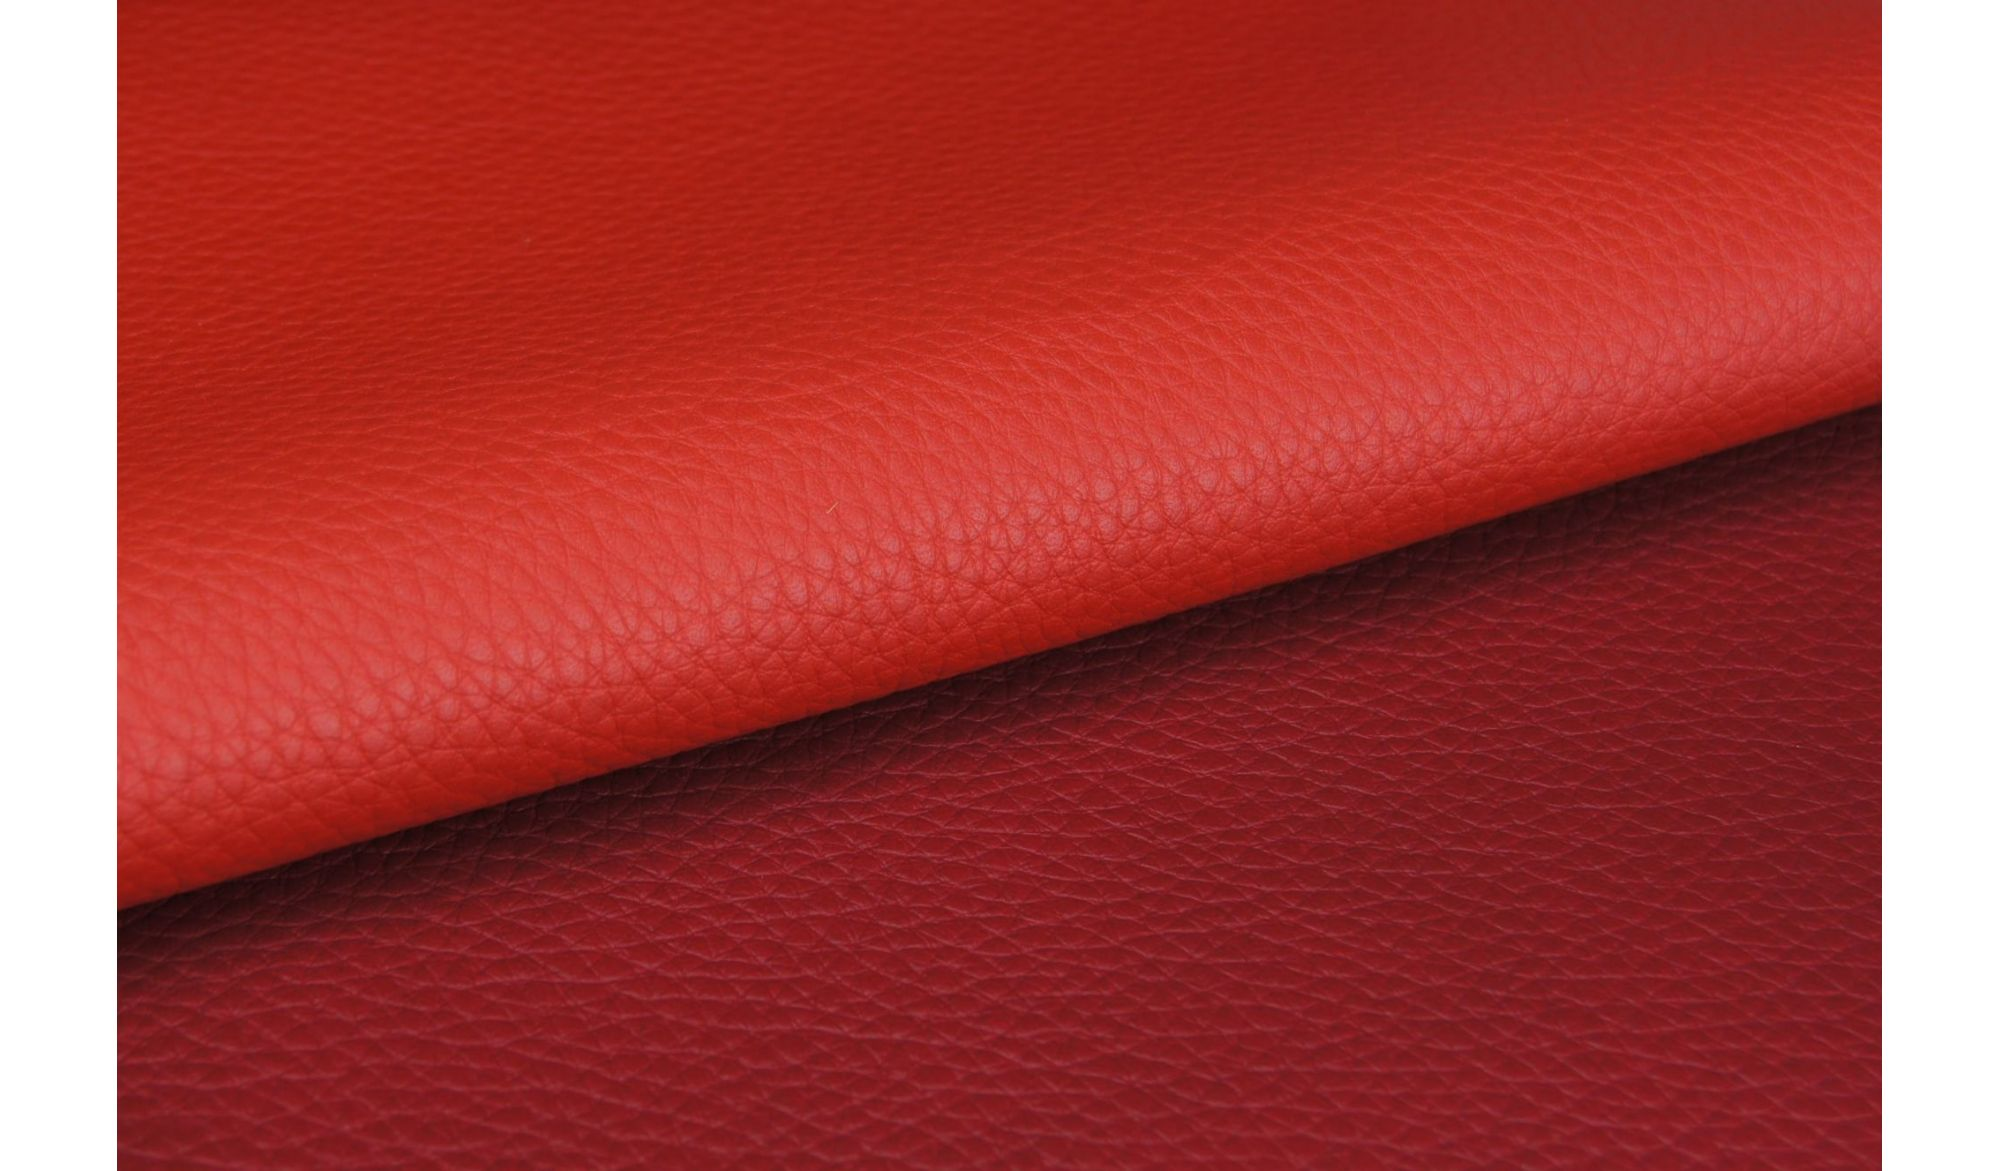 SKÓRA ALPIN Raspberry 27092 - Leather alt_skory_kolor_raspberry 27092 Upholstery IMO Plain - Default